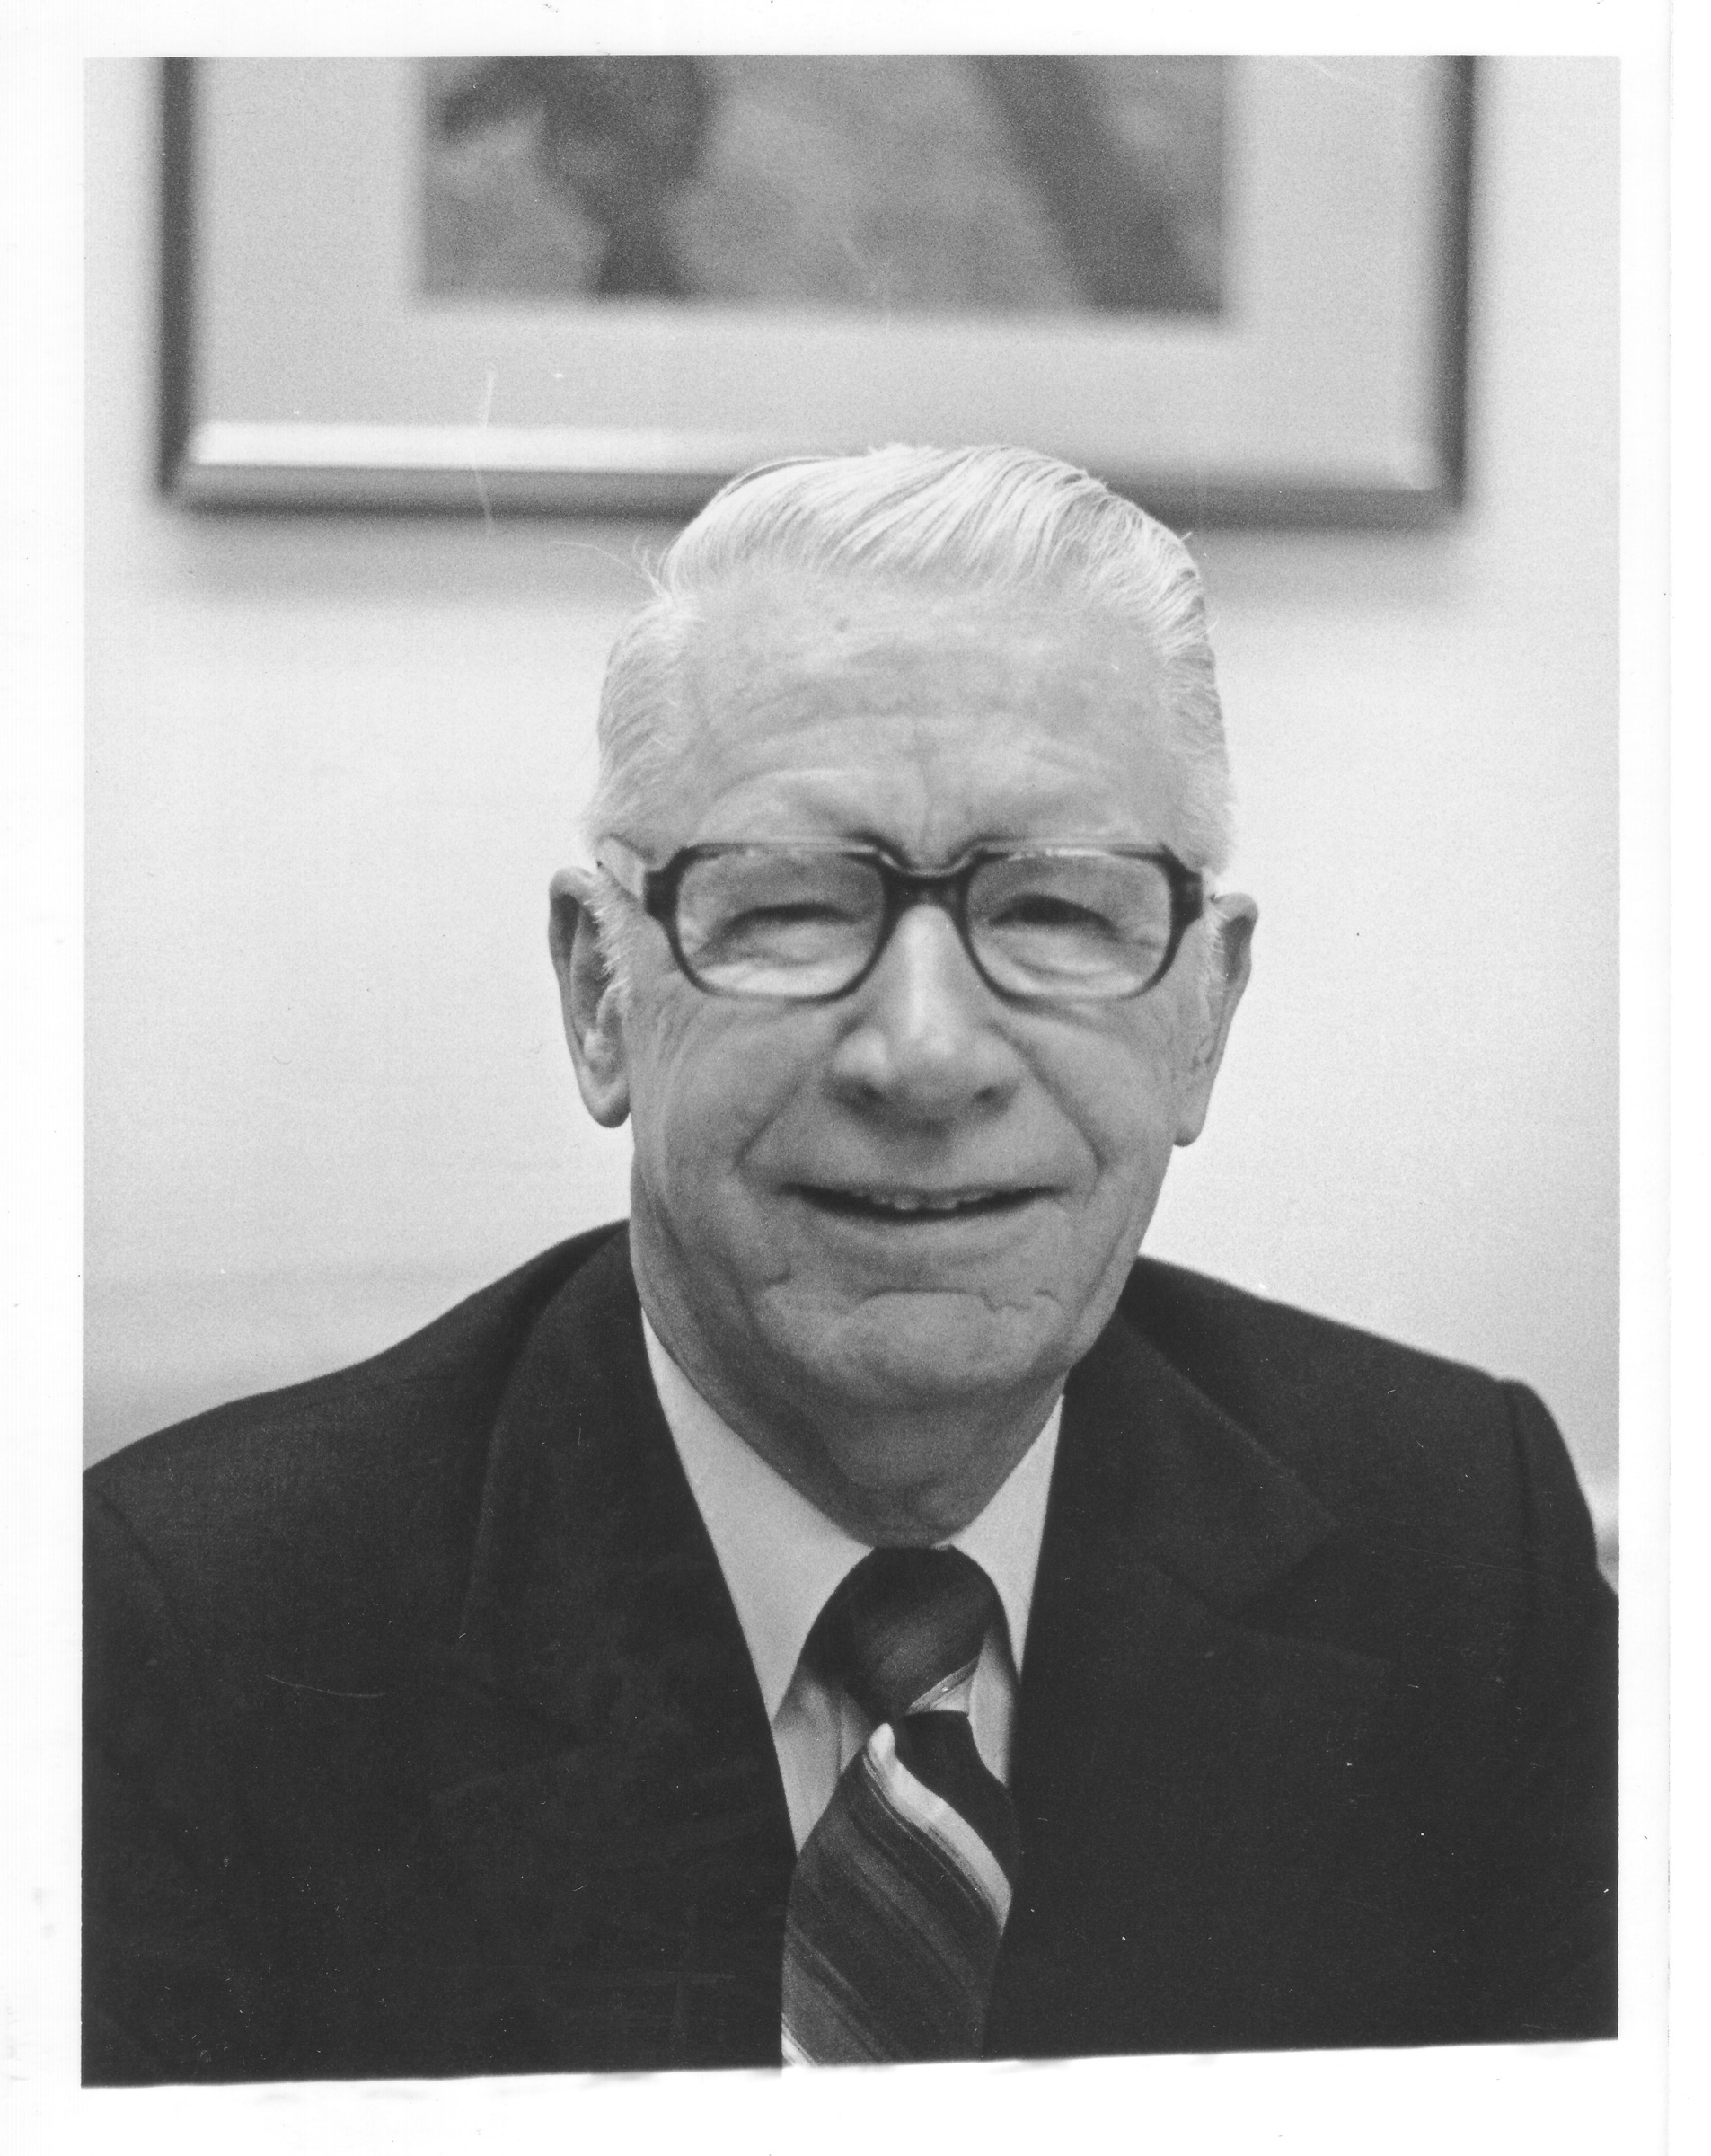 Dr. Robert C. Krug in his office